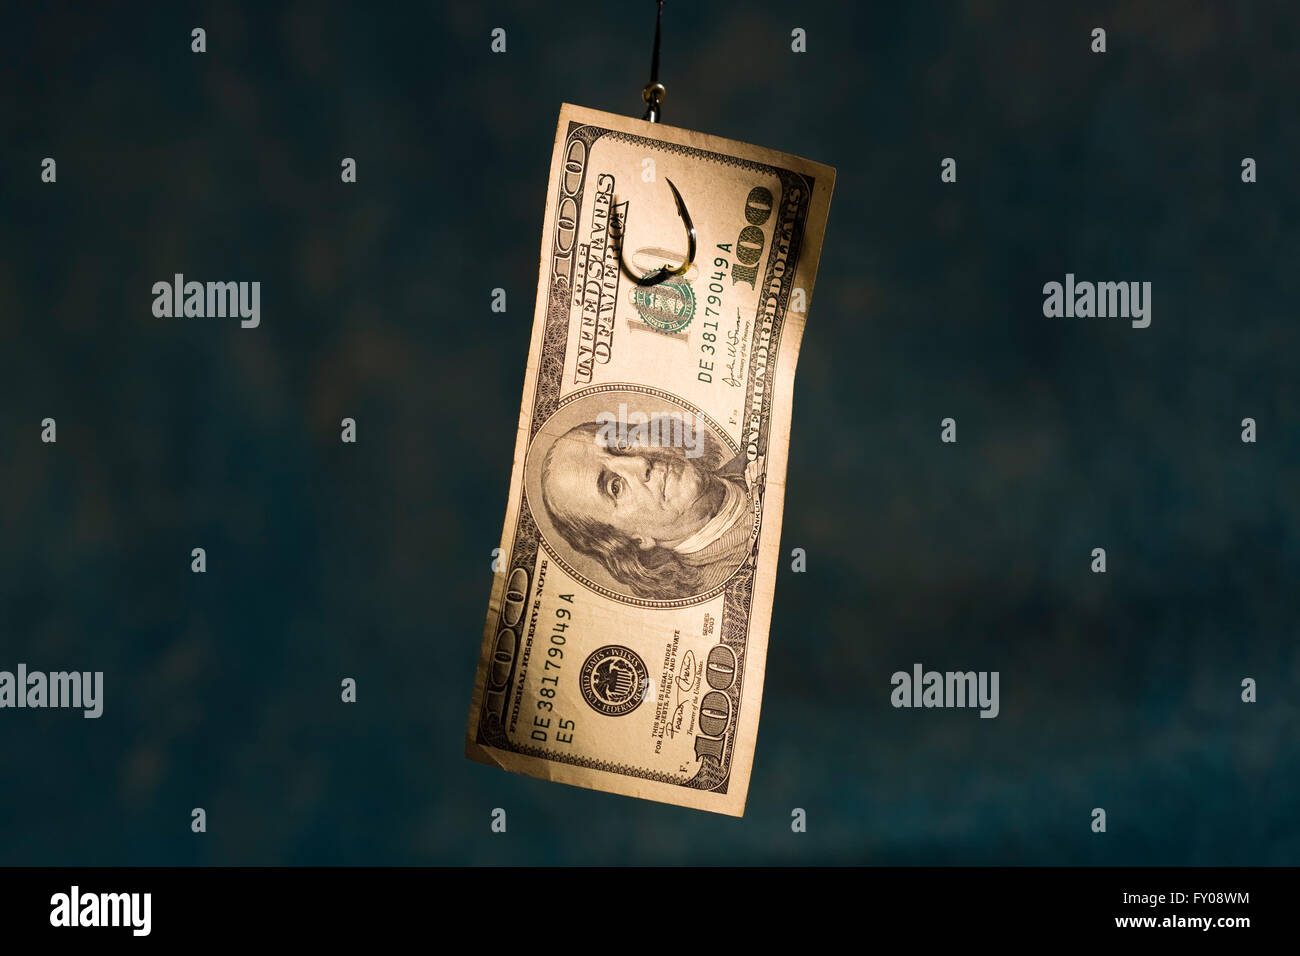 A 100 dollar bill hanging on a fishing hook on a light blue background - Stock Image